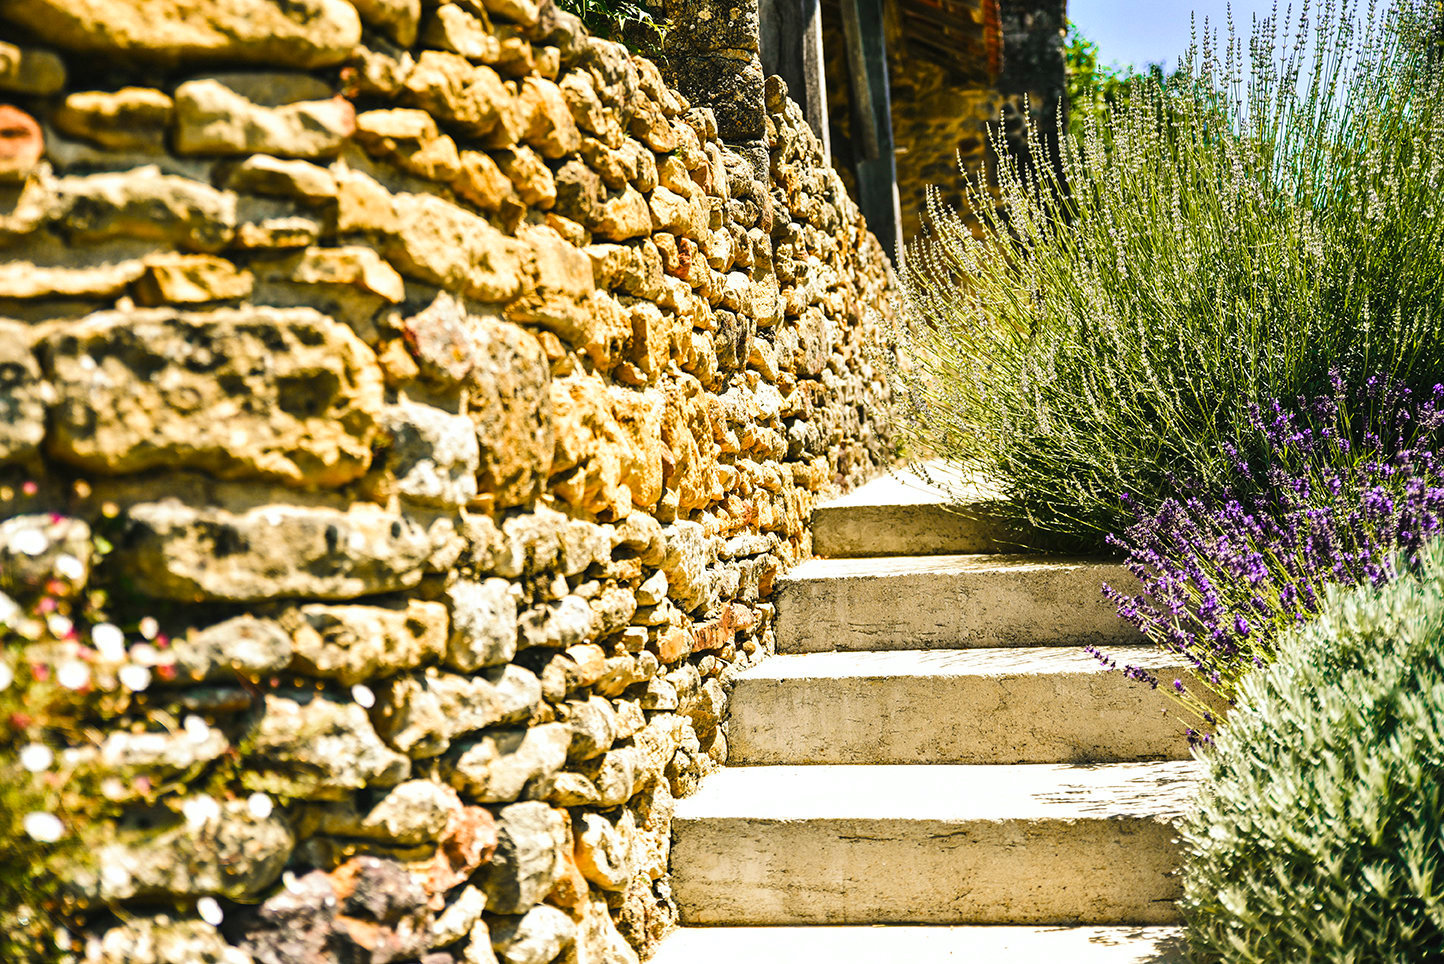 Luxury holiday accommodation in the Dordogne with steps brushed by lavender